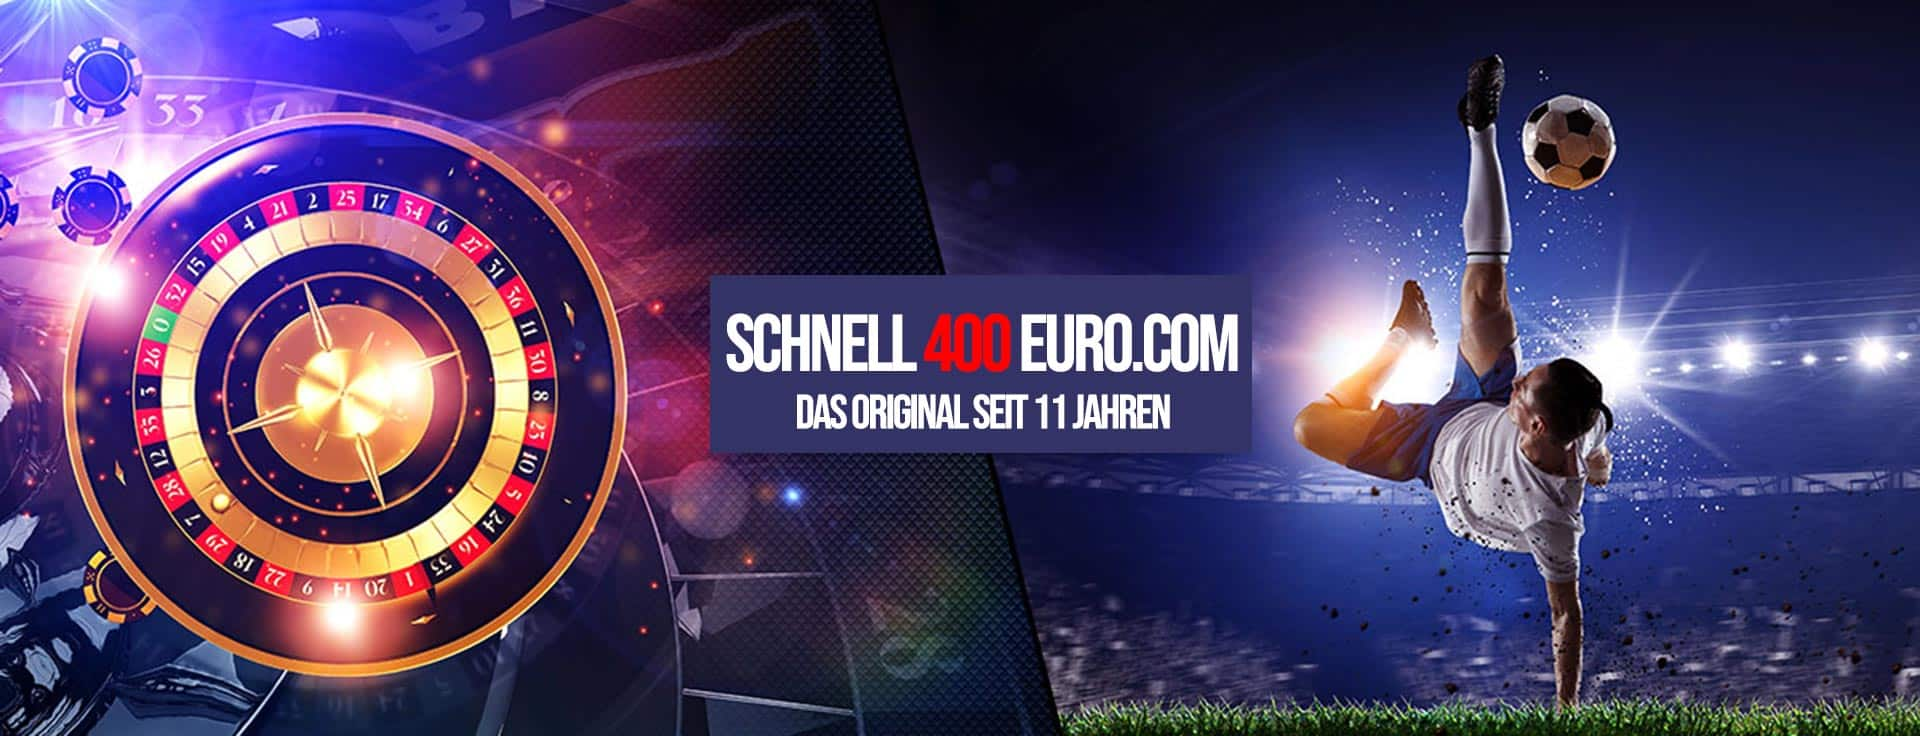 schnell400euro.com_-1 Trading Strategie